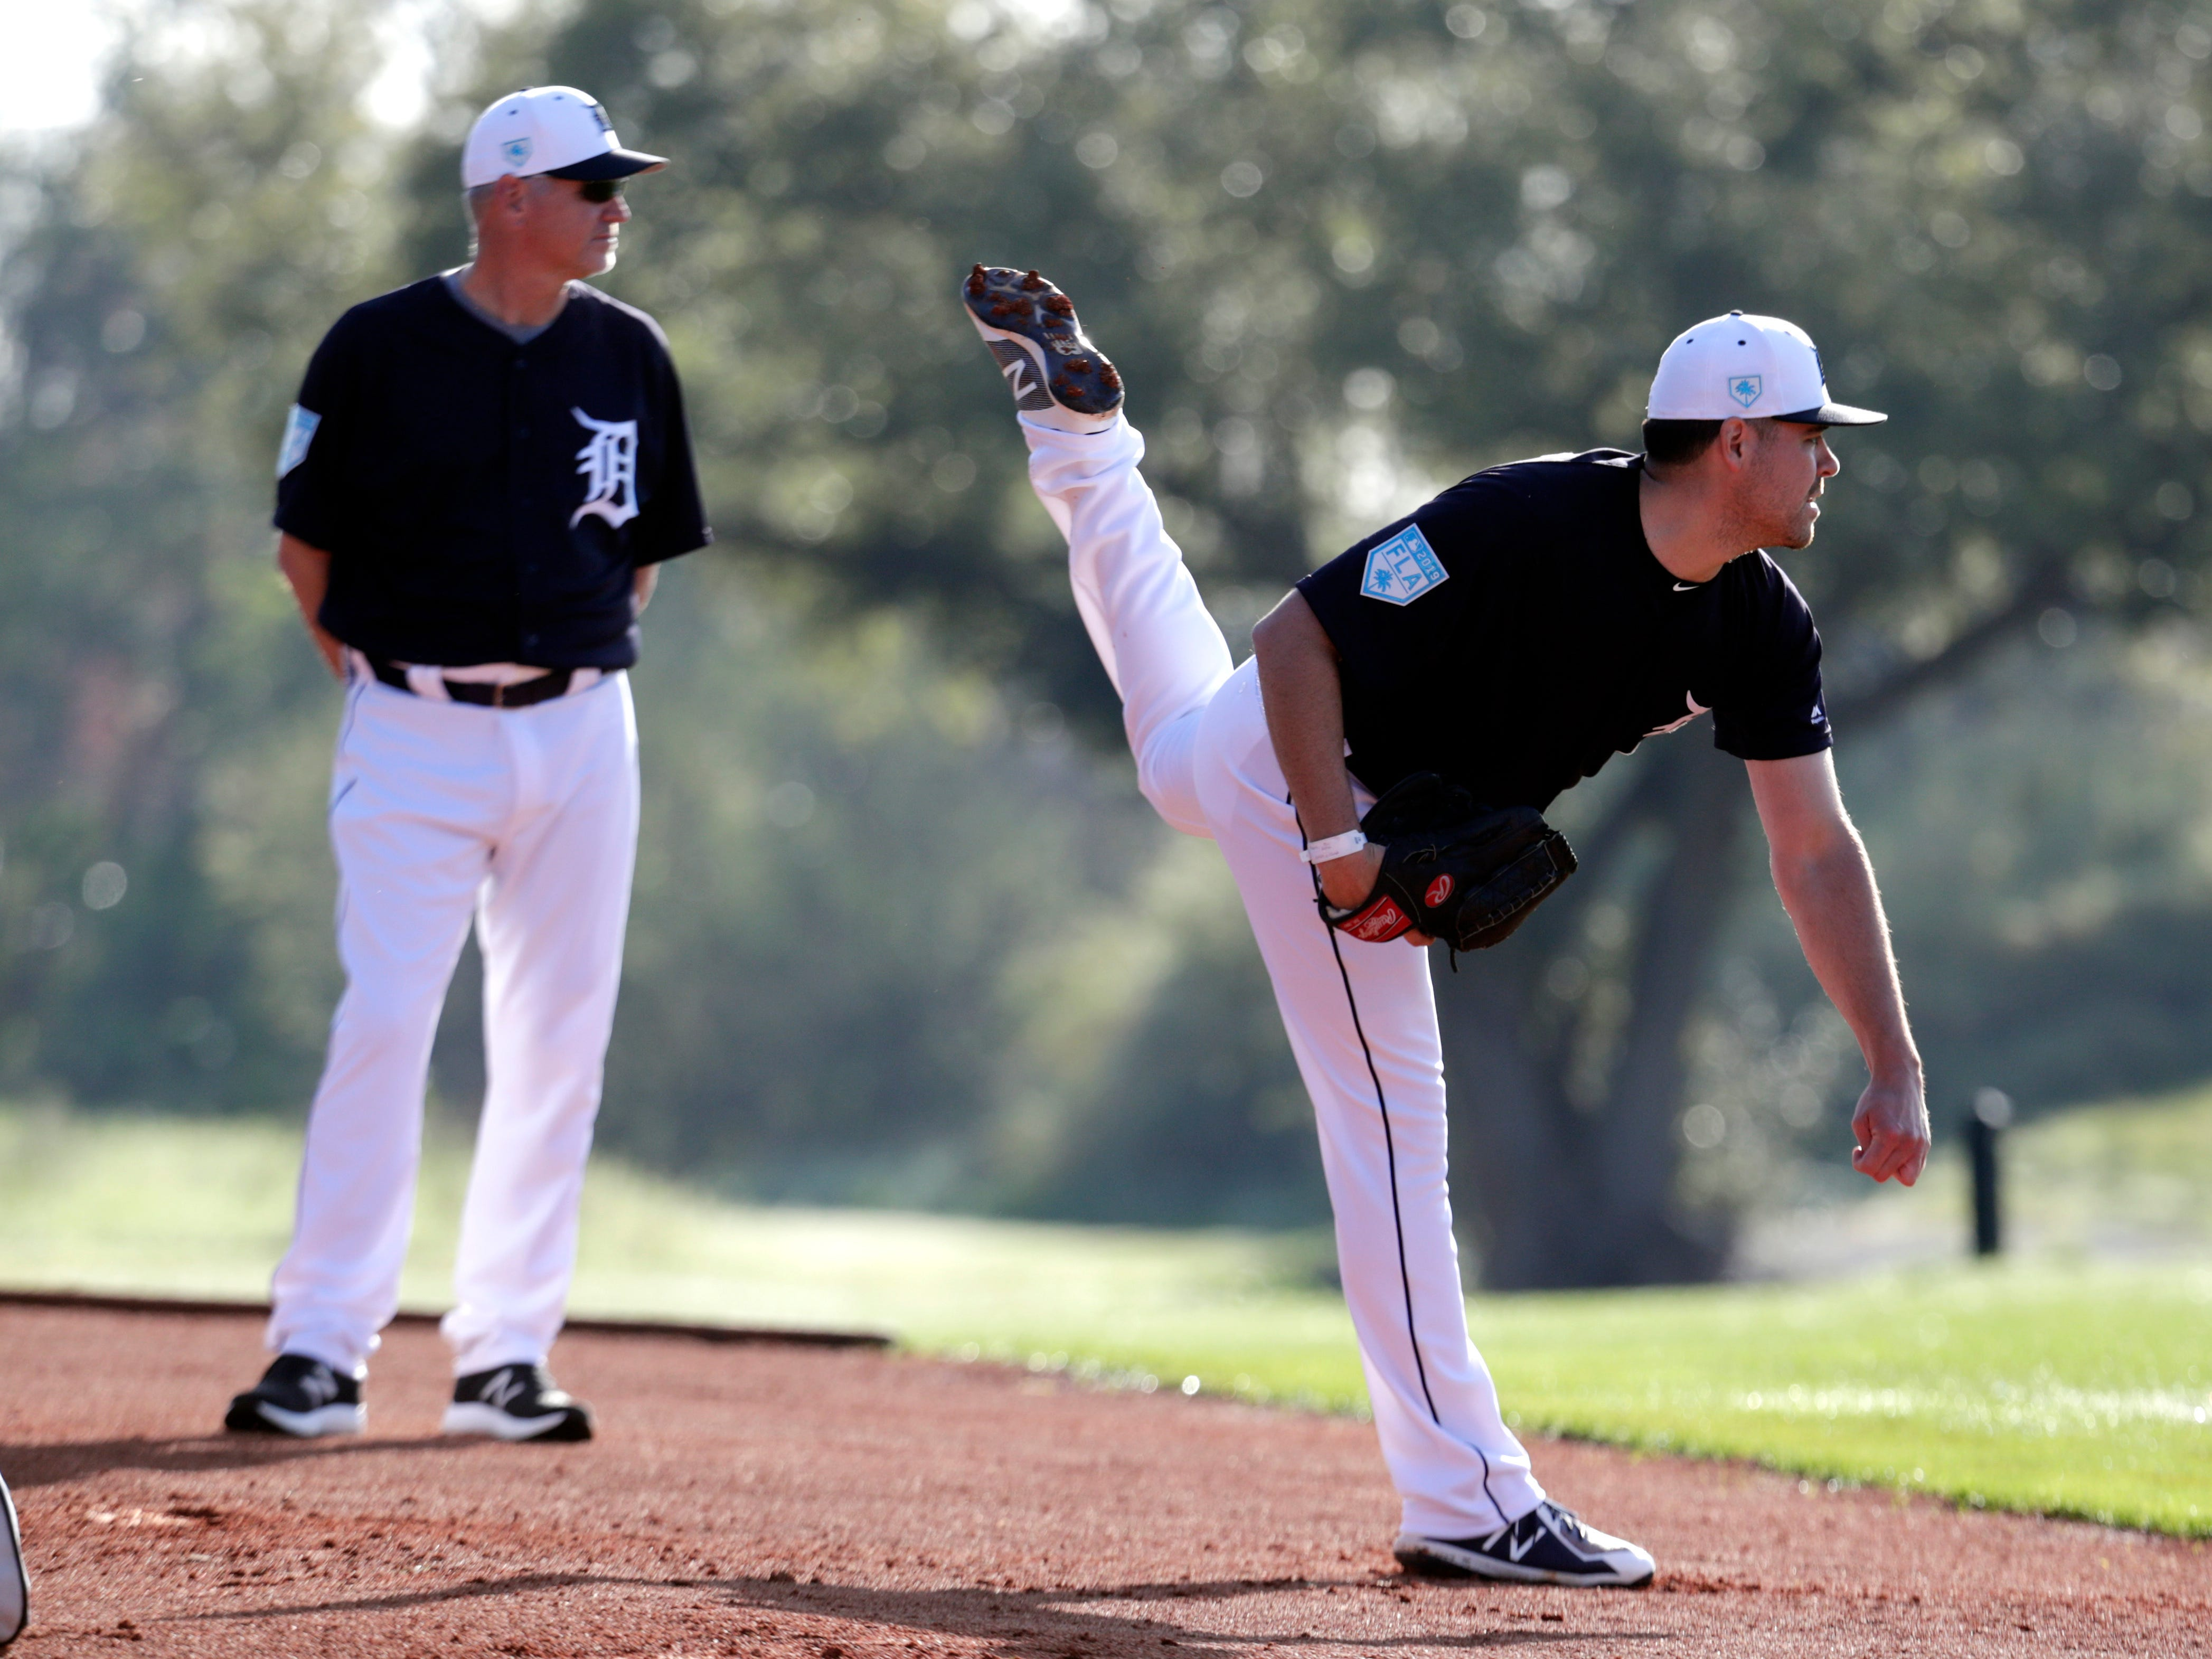 Detroit Tigers pitcher Matt Moore, right, follows through on a delivery as bullpen coach Jeff Pico looks on at the Detroit Tigers' spring training baseball facility, Friday, Feb. 15, 2019, in Lakeland, Fla.